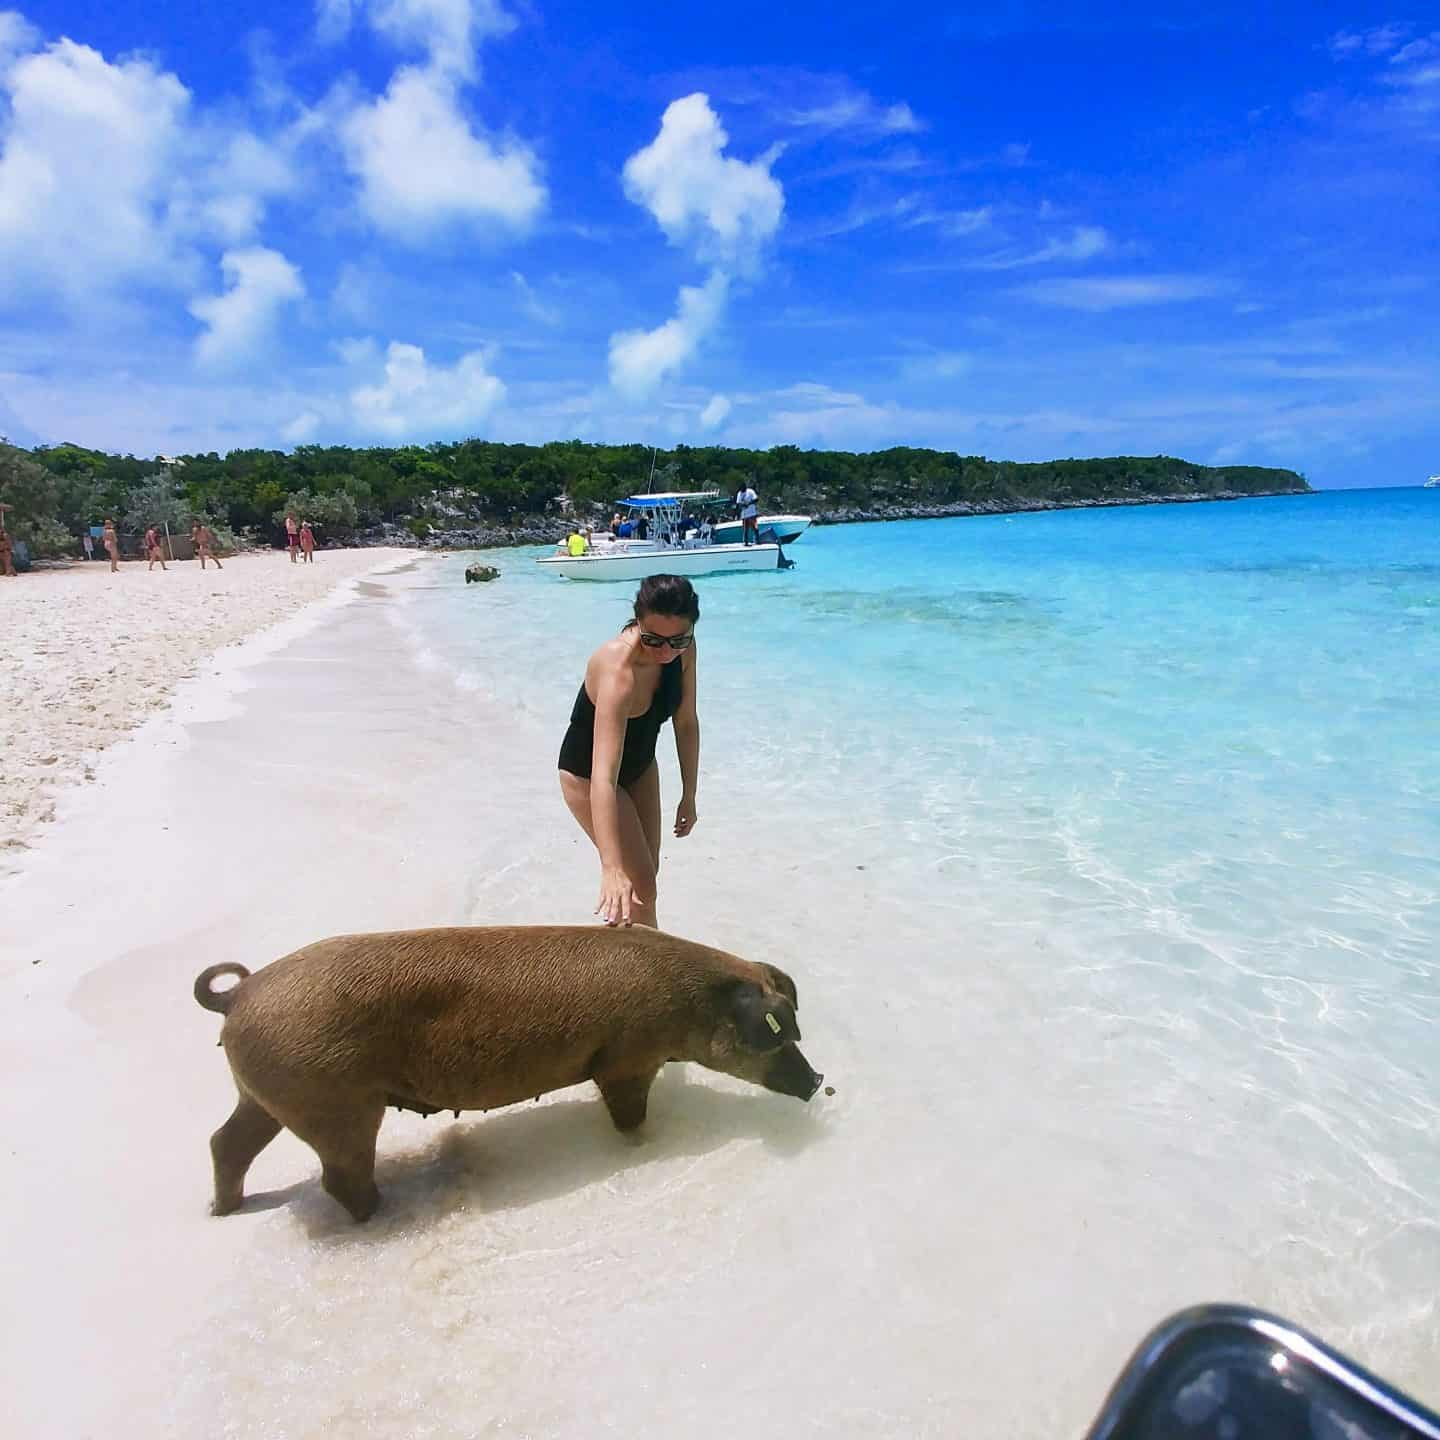 Travel Guide to The Exumas Bahamas petting a pig on pig island on the beach with blue waters in exuma